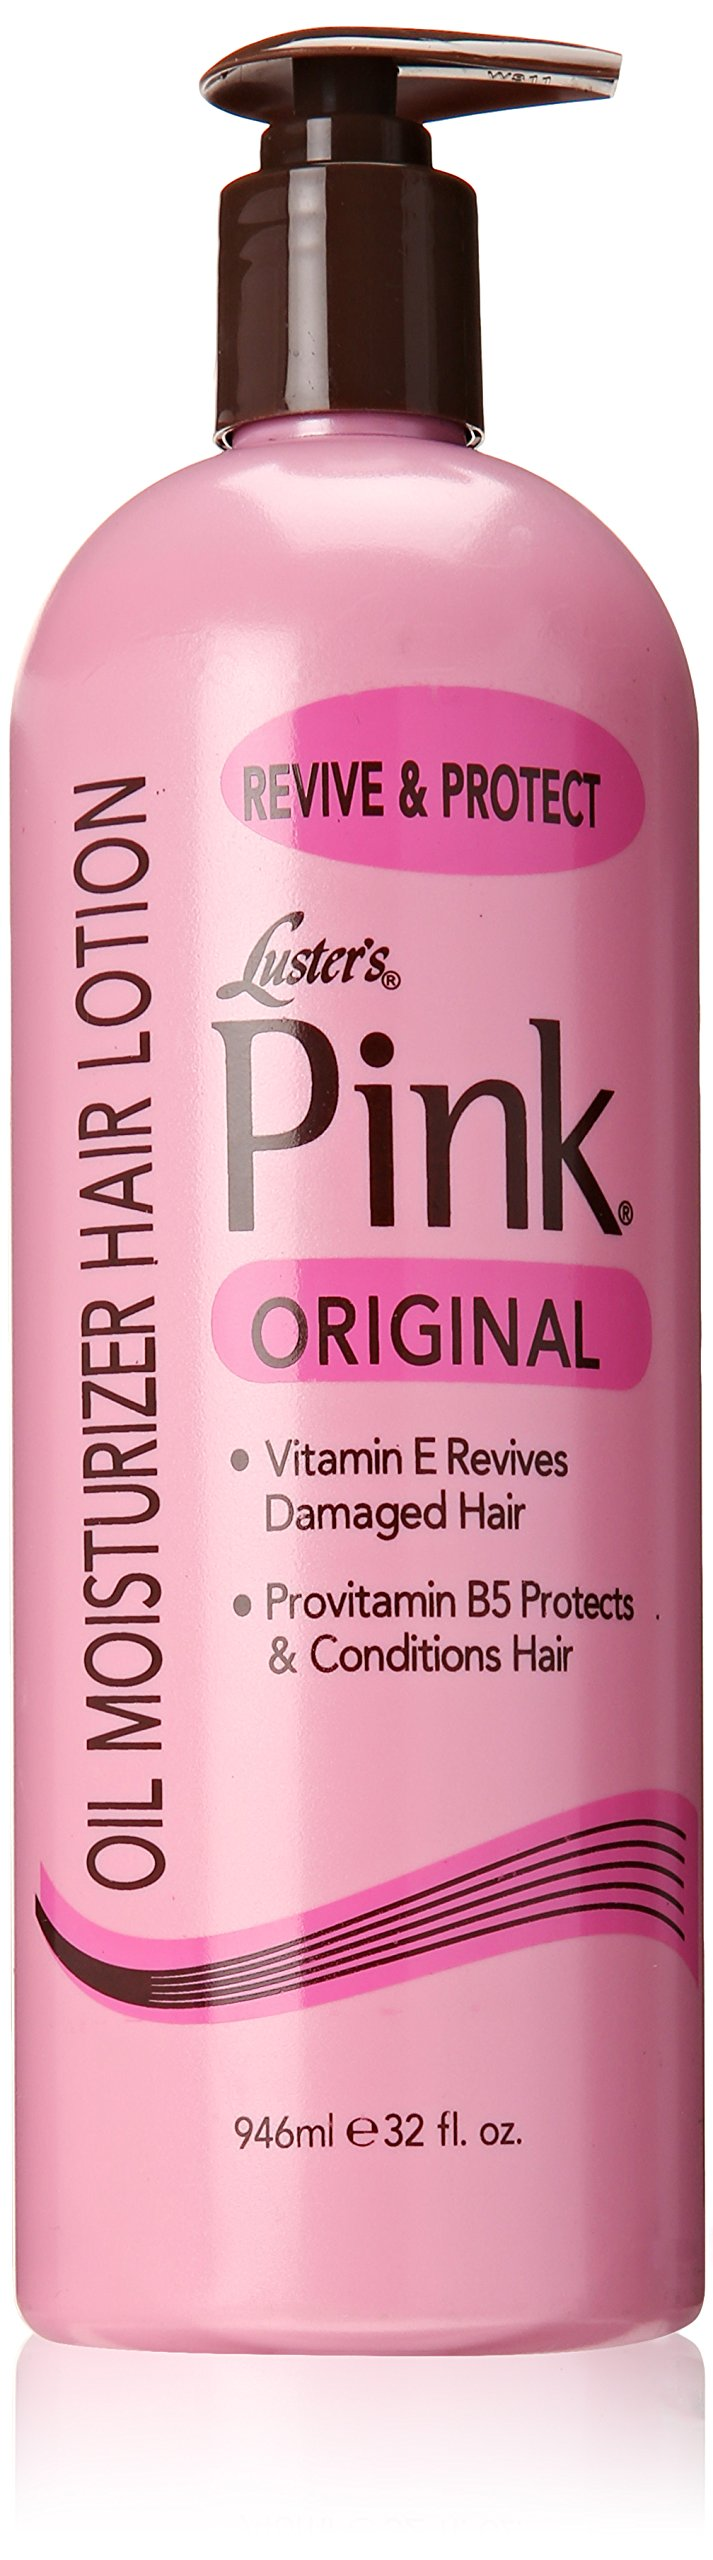 Luster's Pink Oil Moisturizer Hair Lotion, 32 Ounce (Packaging may vary) by Luster's